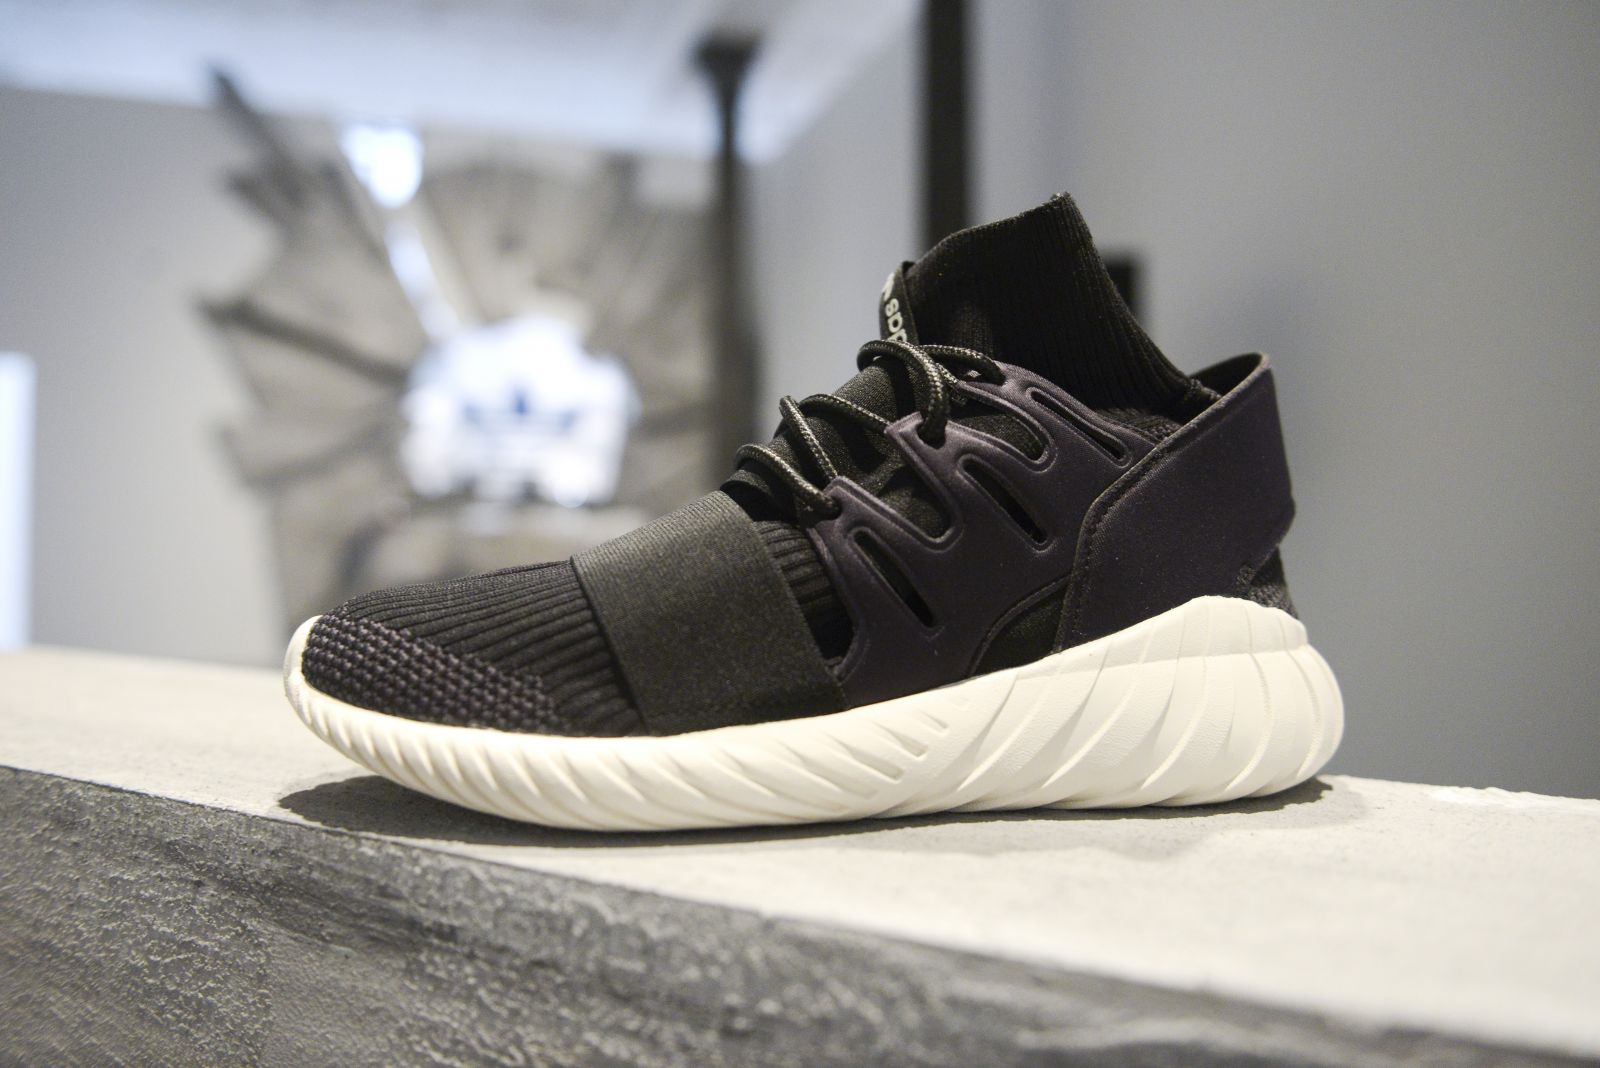 [Tariff inclusion domestic delivery] adidas TUBULAR NOVA PRIMEKNIT S80106